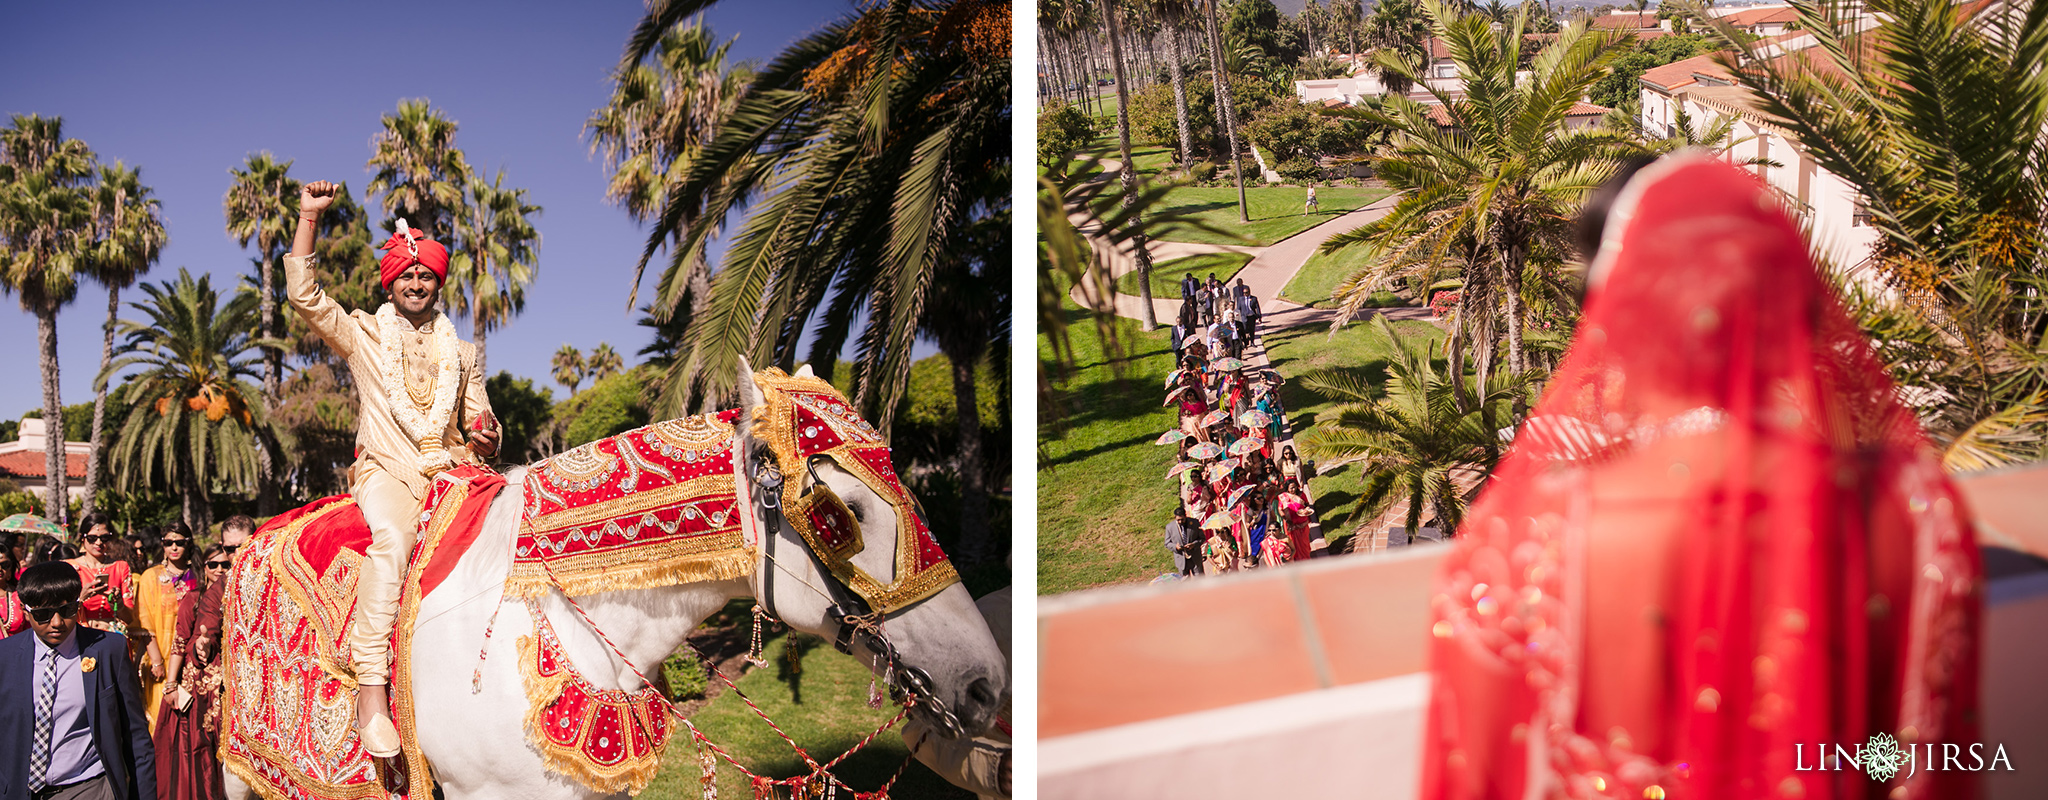 15 Hilton Santa Barbara Indian Wedding Photography